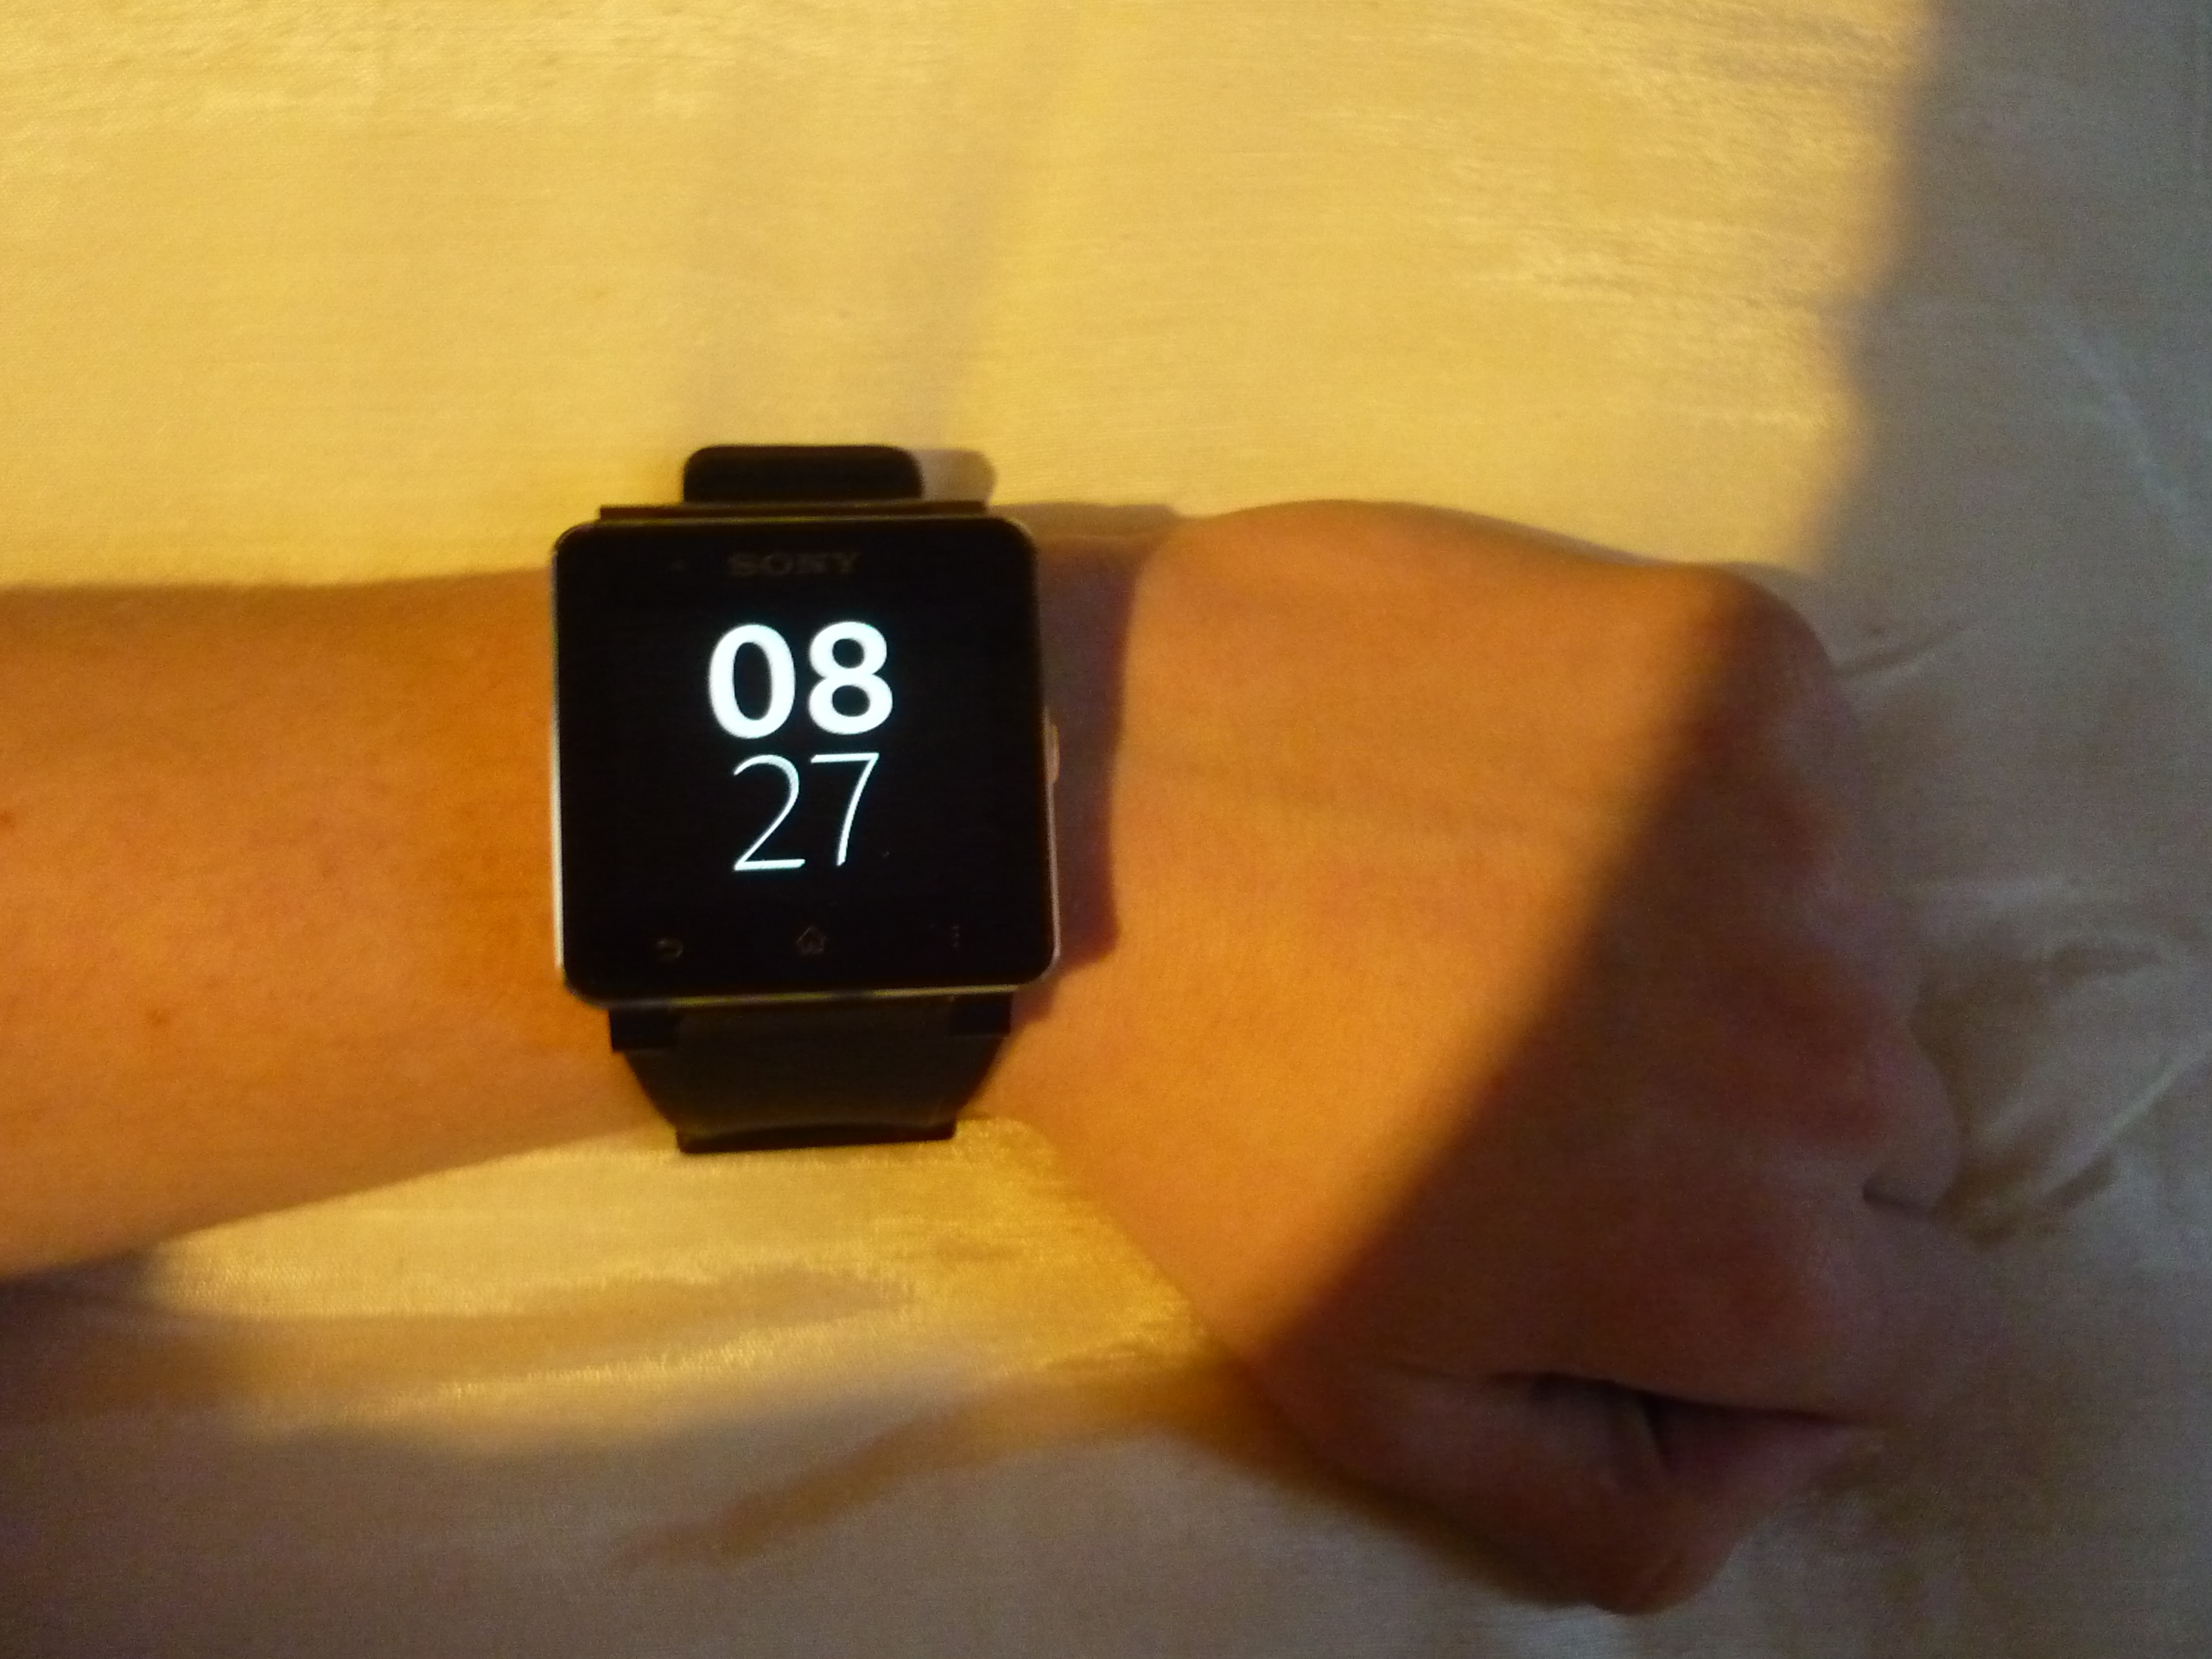 Smart Watches: What The Future Holds For The Android Watch